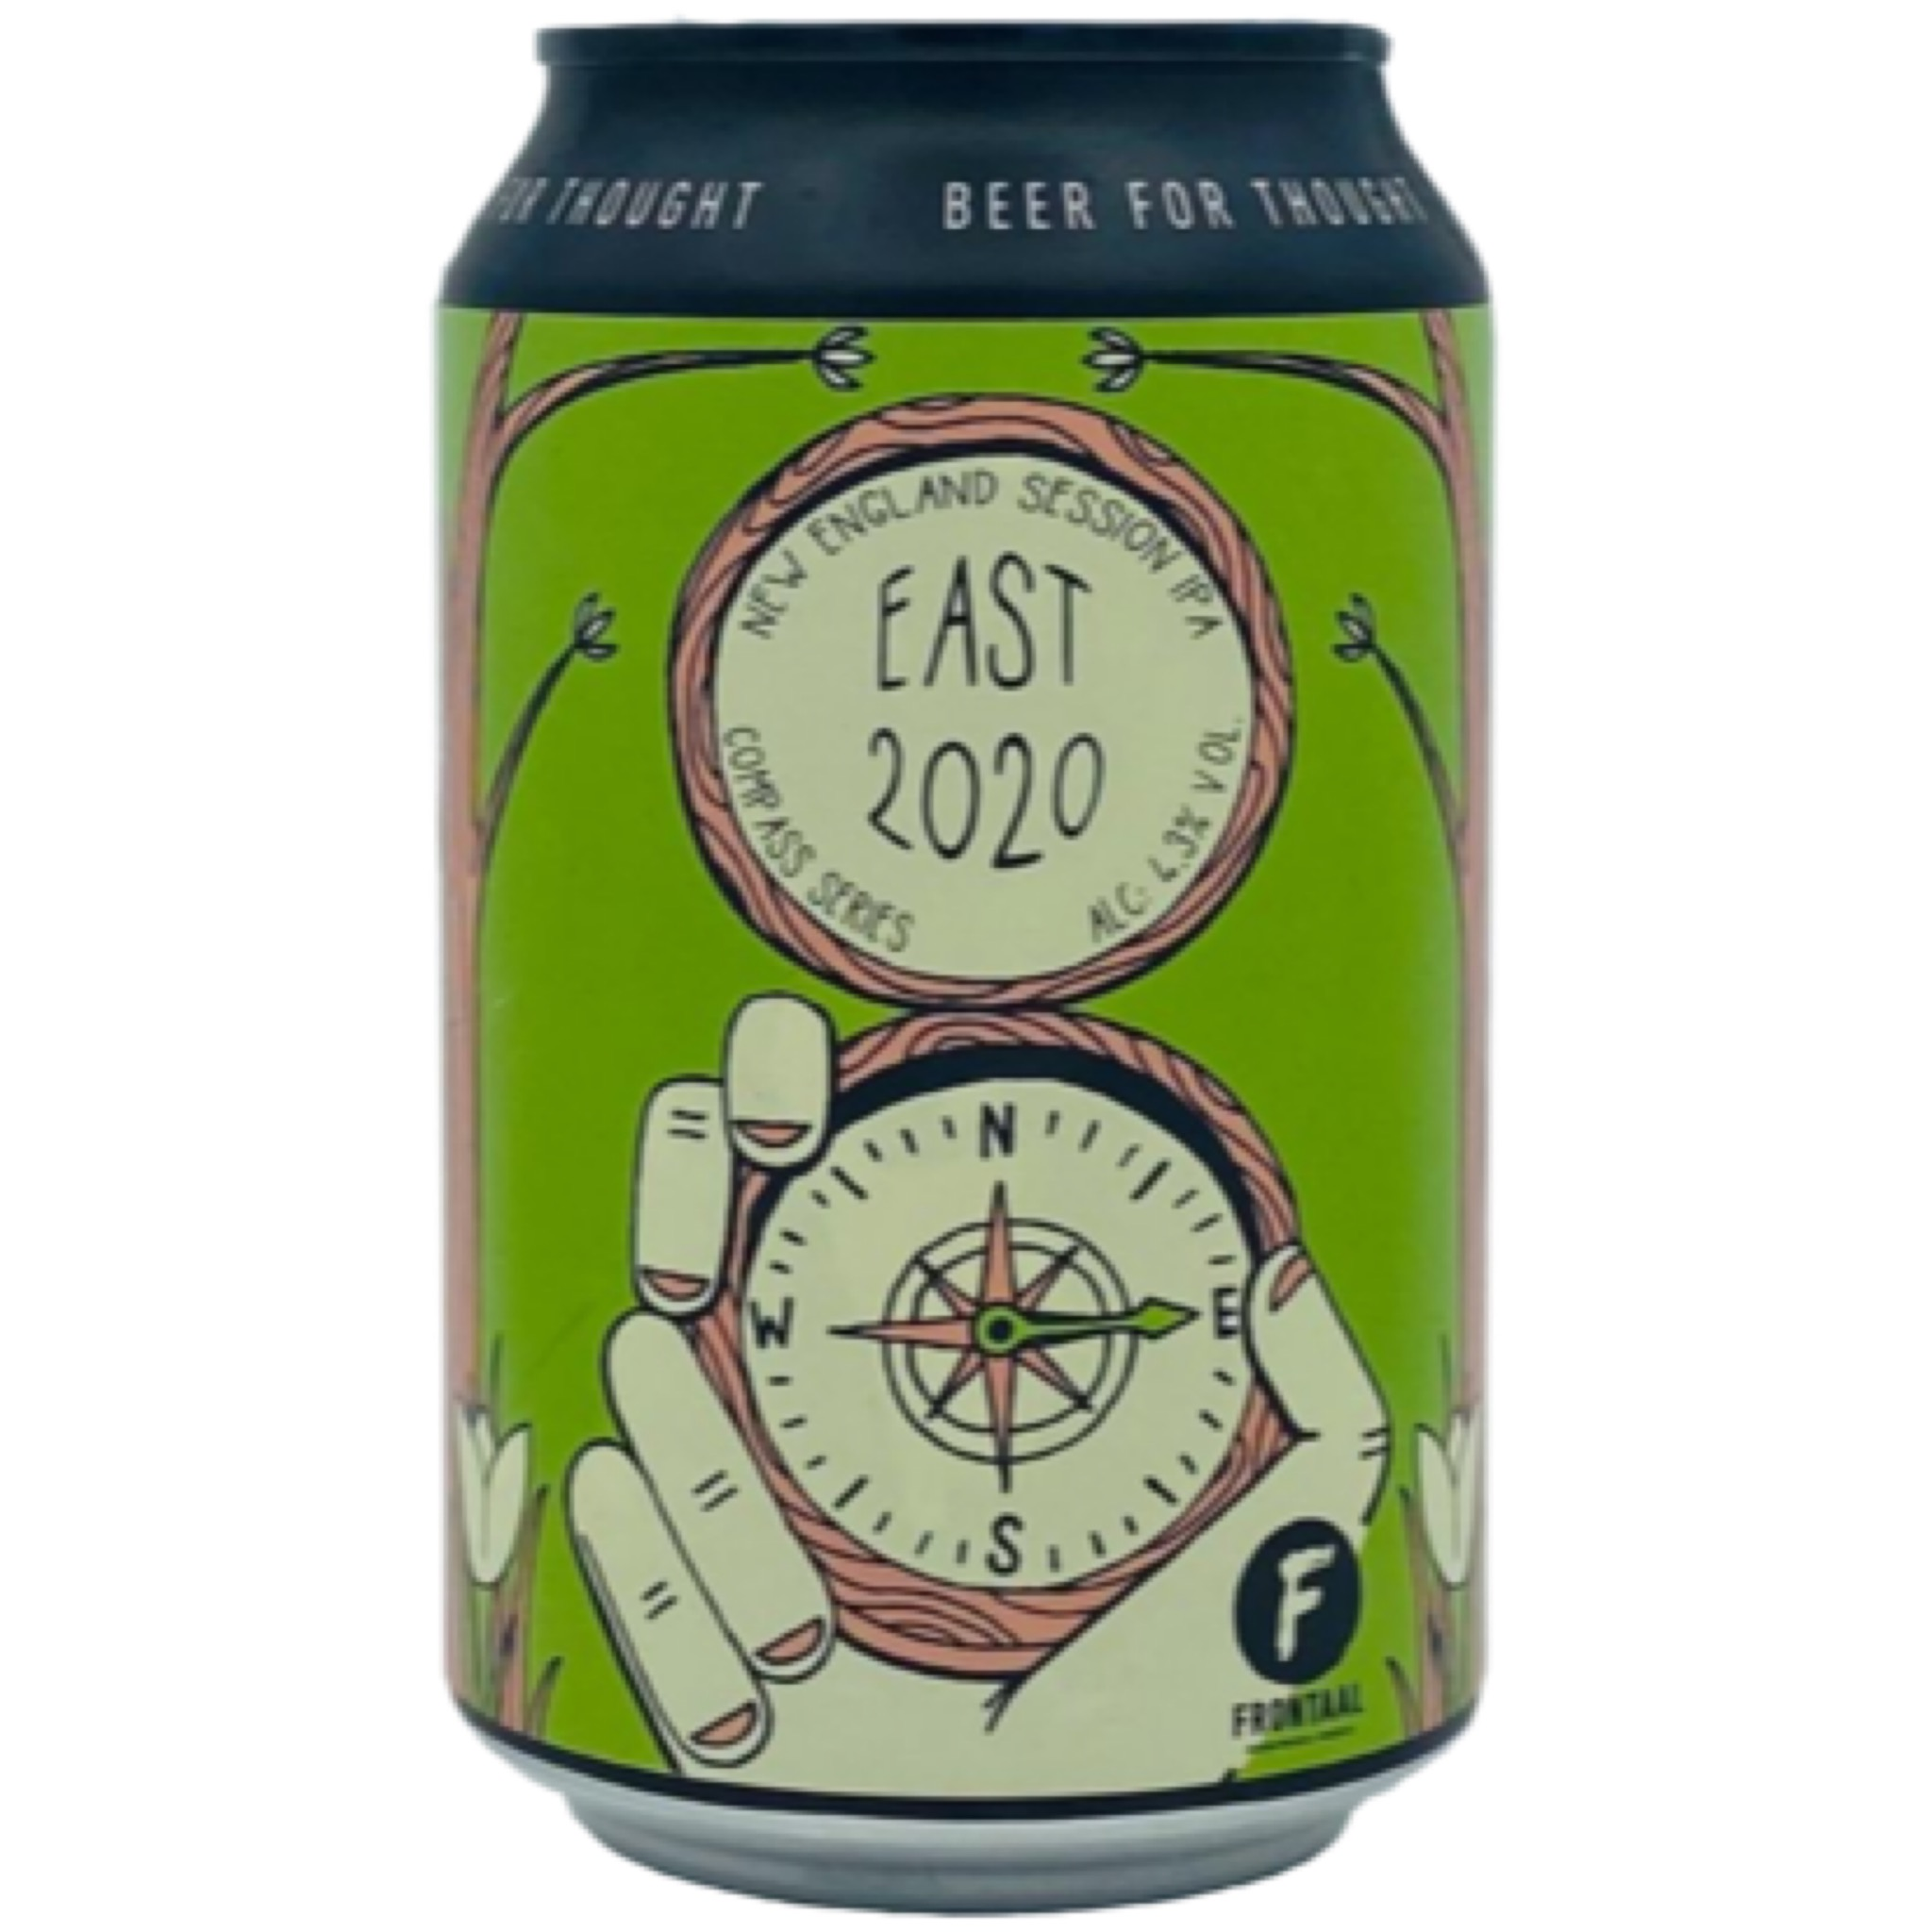 East 2020 Session NEIPA 4.3% 330ml Brouwerij Frontaal